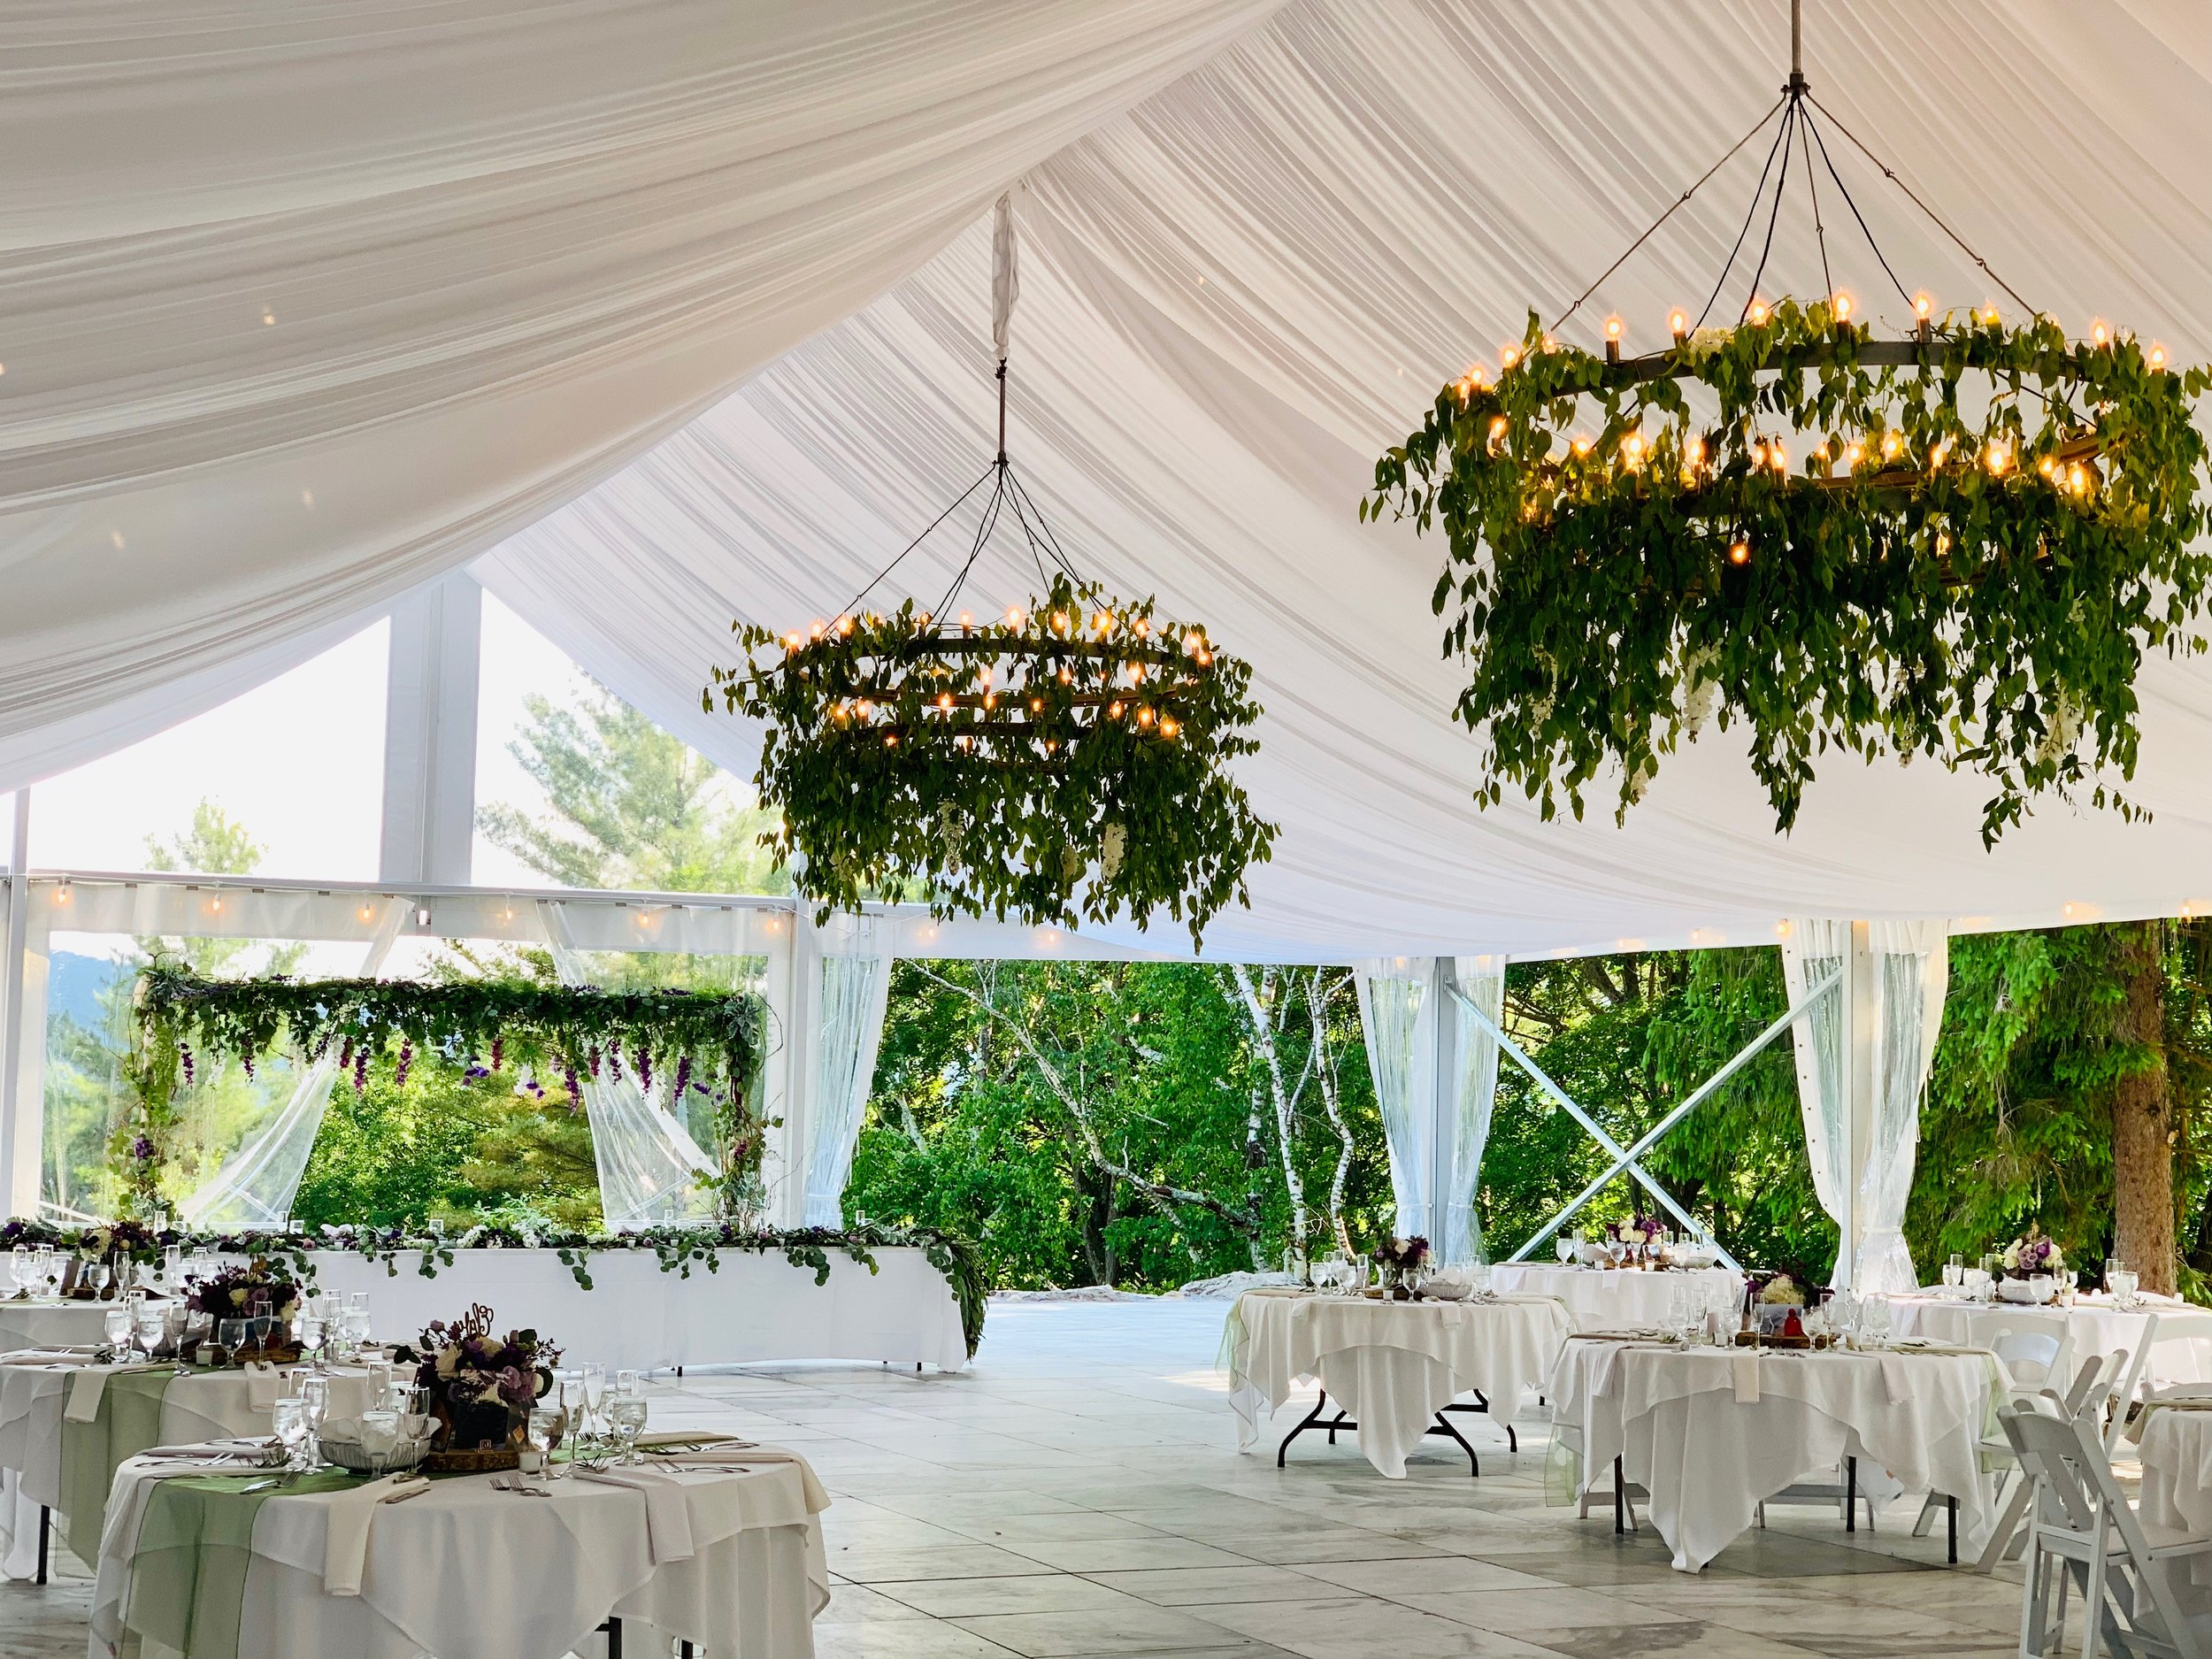 The Marble Pavilion Tent - Wedding Receptions and Celebrations for 240+ guests to dine and dance in a unique tent with a floor of local Vermont white marble.